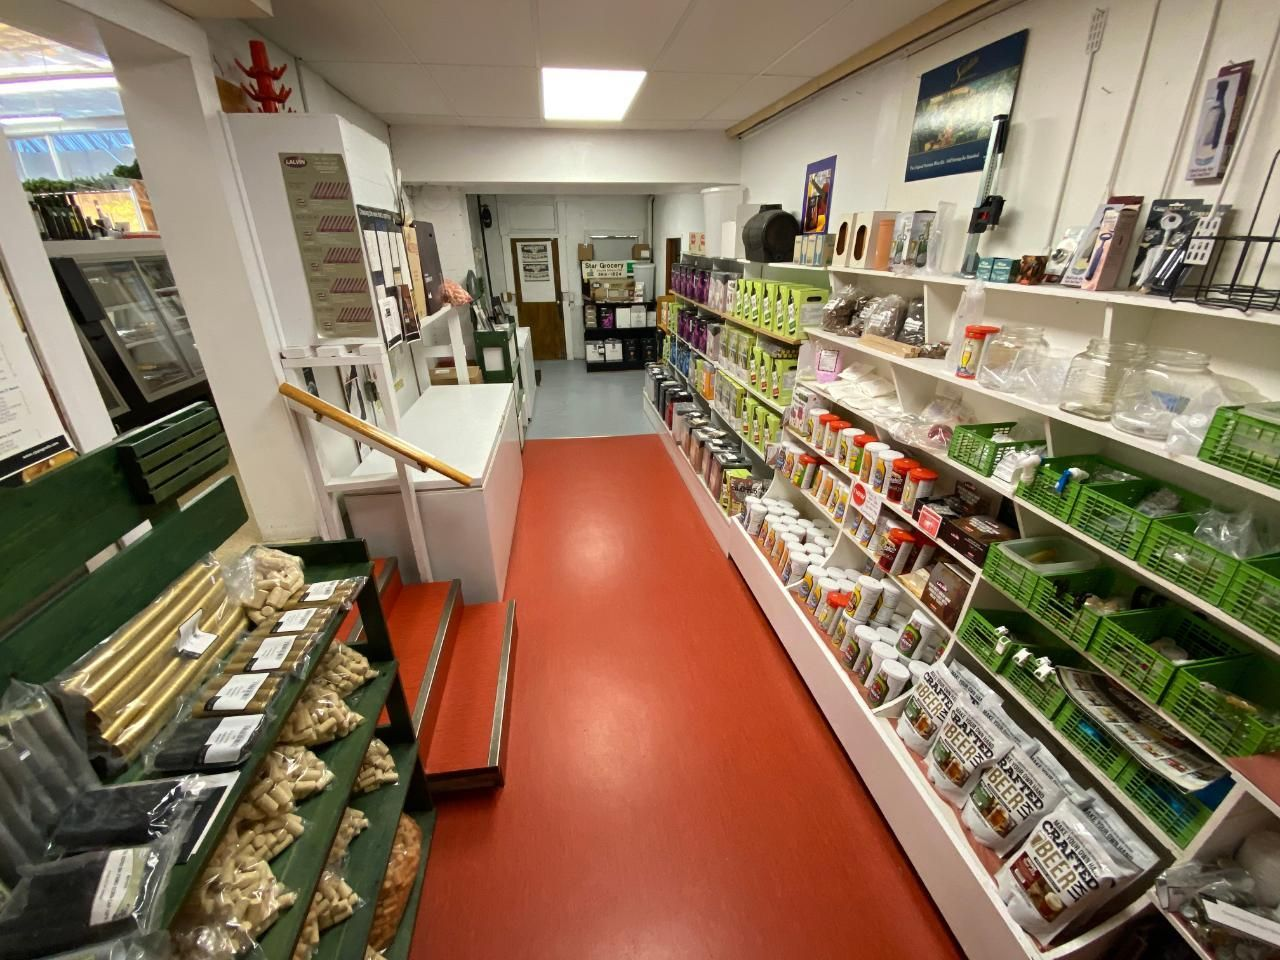 Photo 9: Photos: 328 ROSSLAND AVENUE in Trail: Retail for sale : MLS®# 2459289